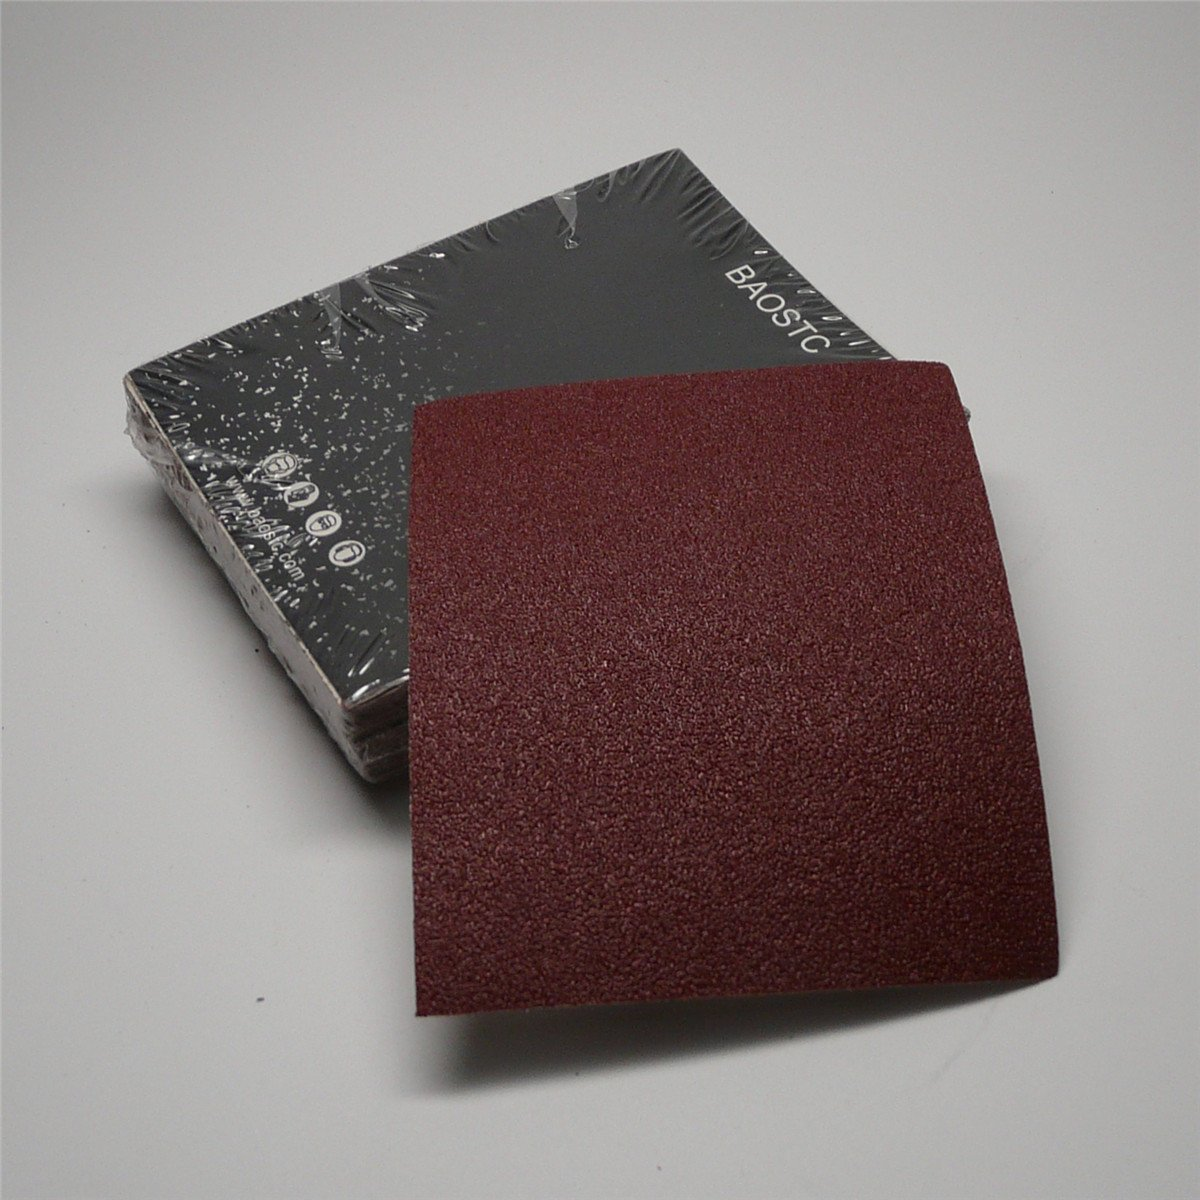 BAOSTC 1/4 sandpaper sheet,4-1/2''*5-1/2'' P80,red aluminum oxide 50PACK